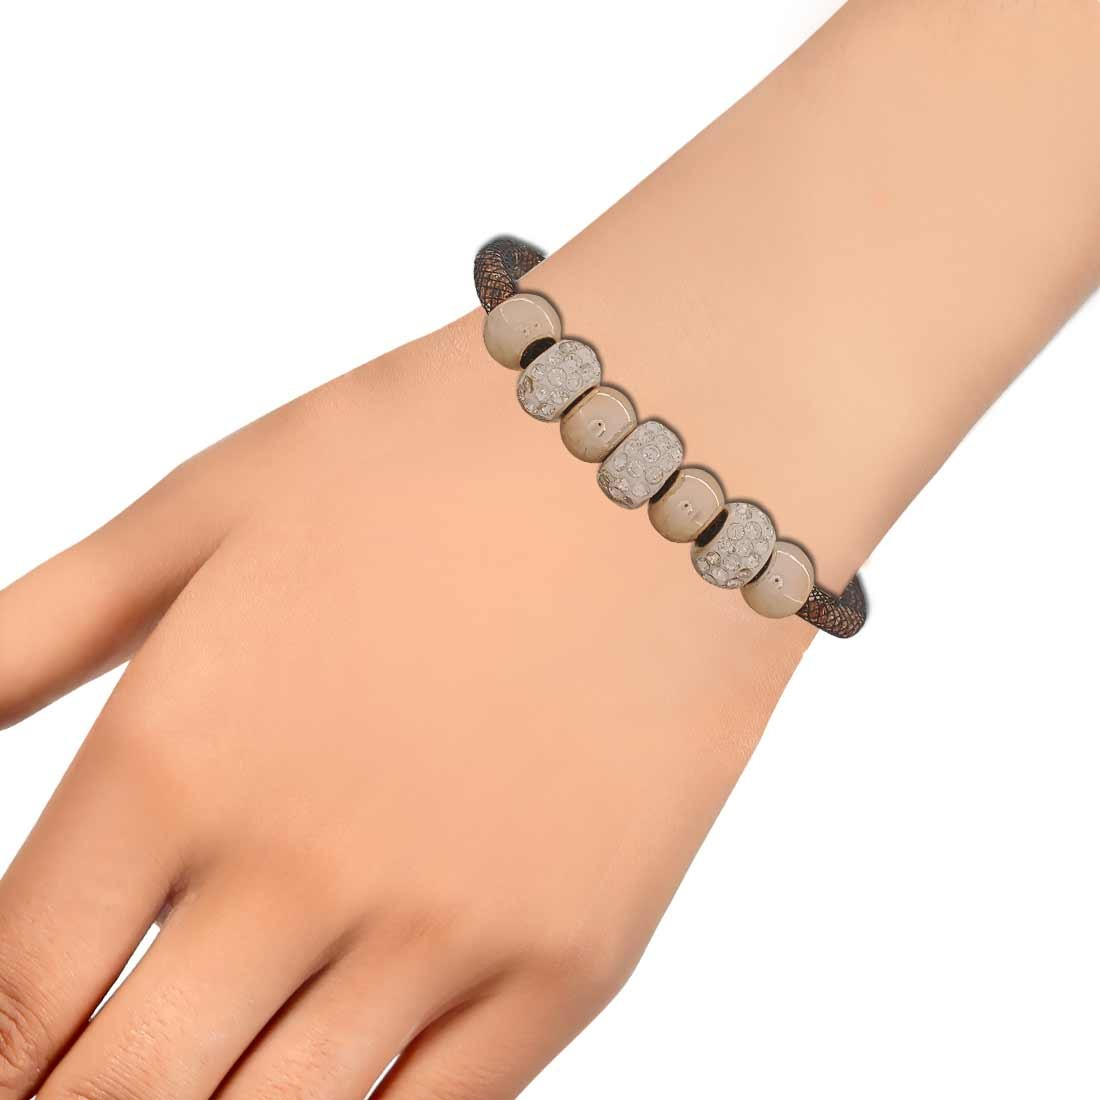 Plush Bronze Black Latest Adjustable Get-together Bracelet Alloy Maayra MY6816